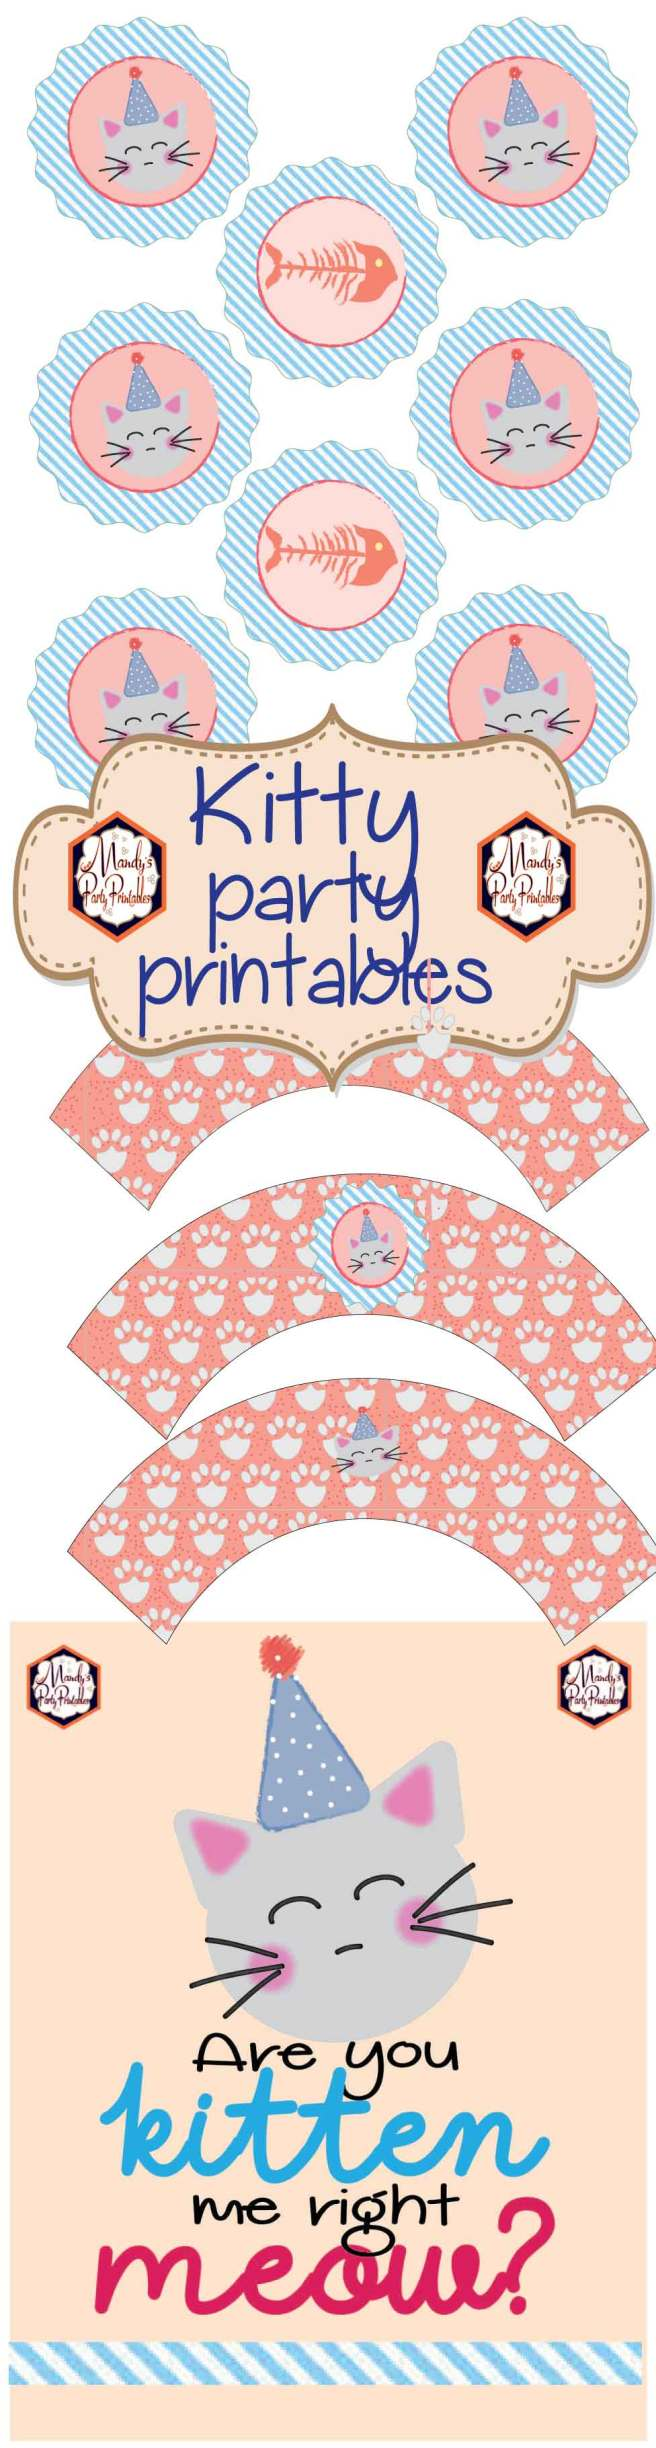 Free Kitten Birthday Party Printables via Mandy's Party Printables